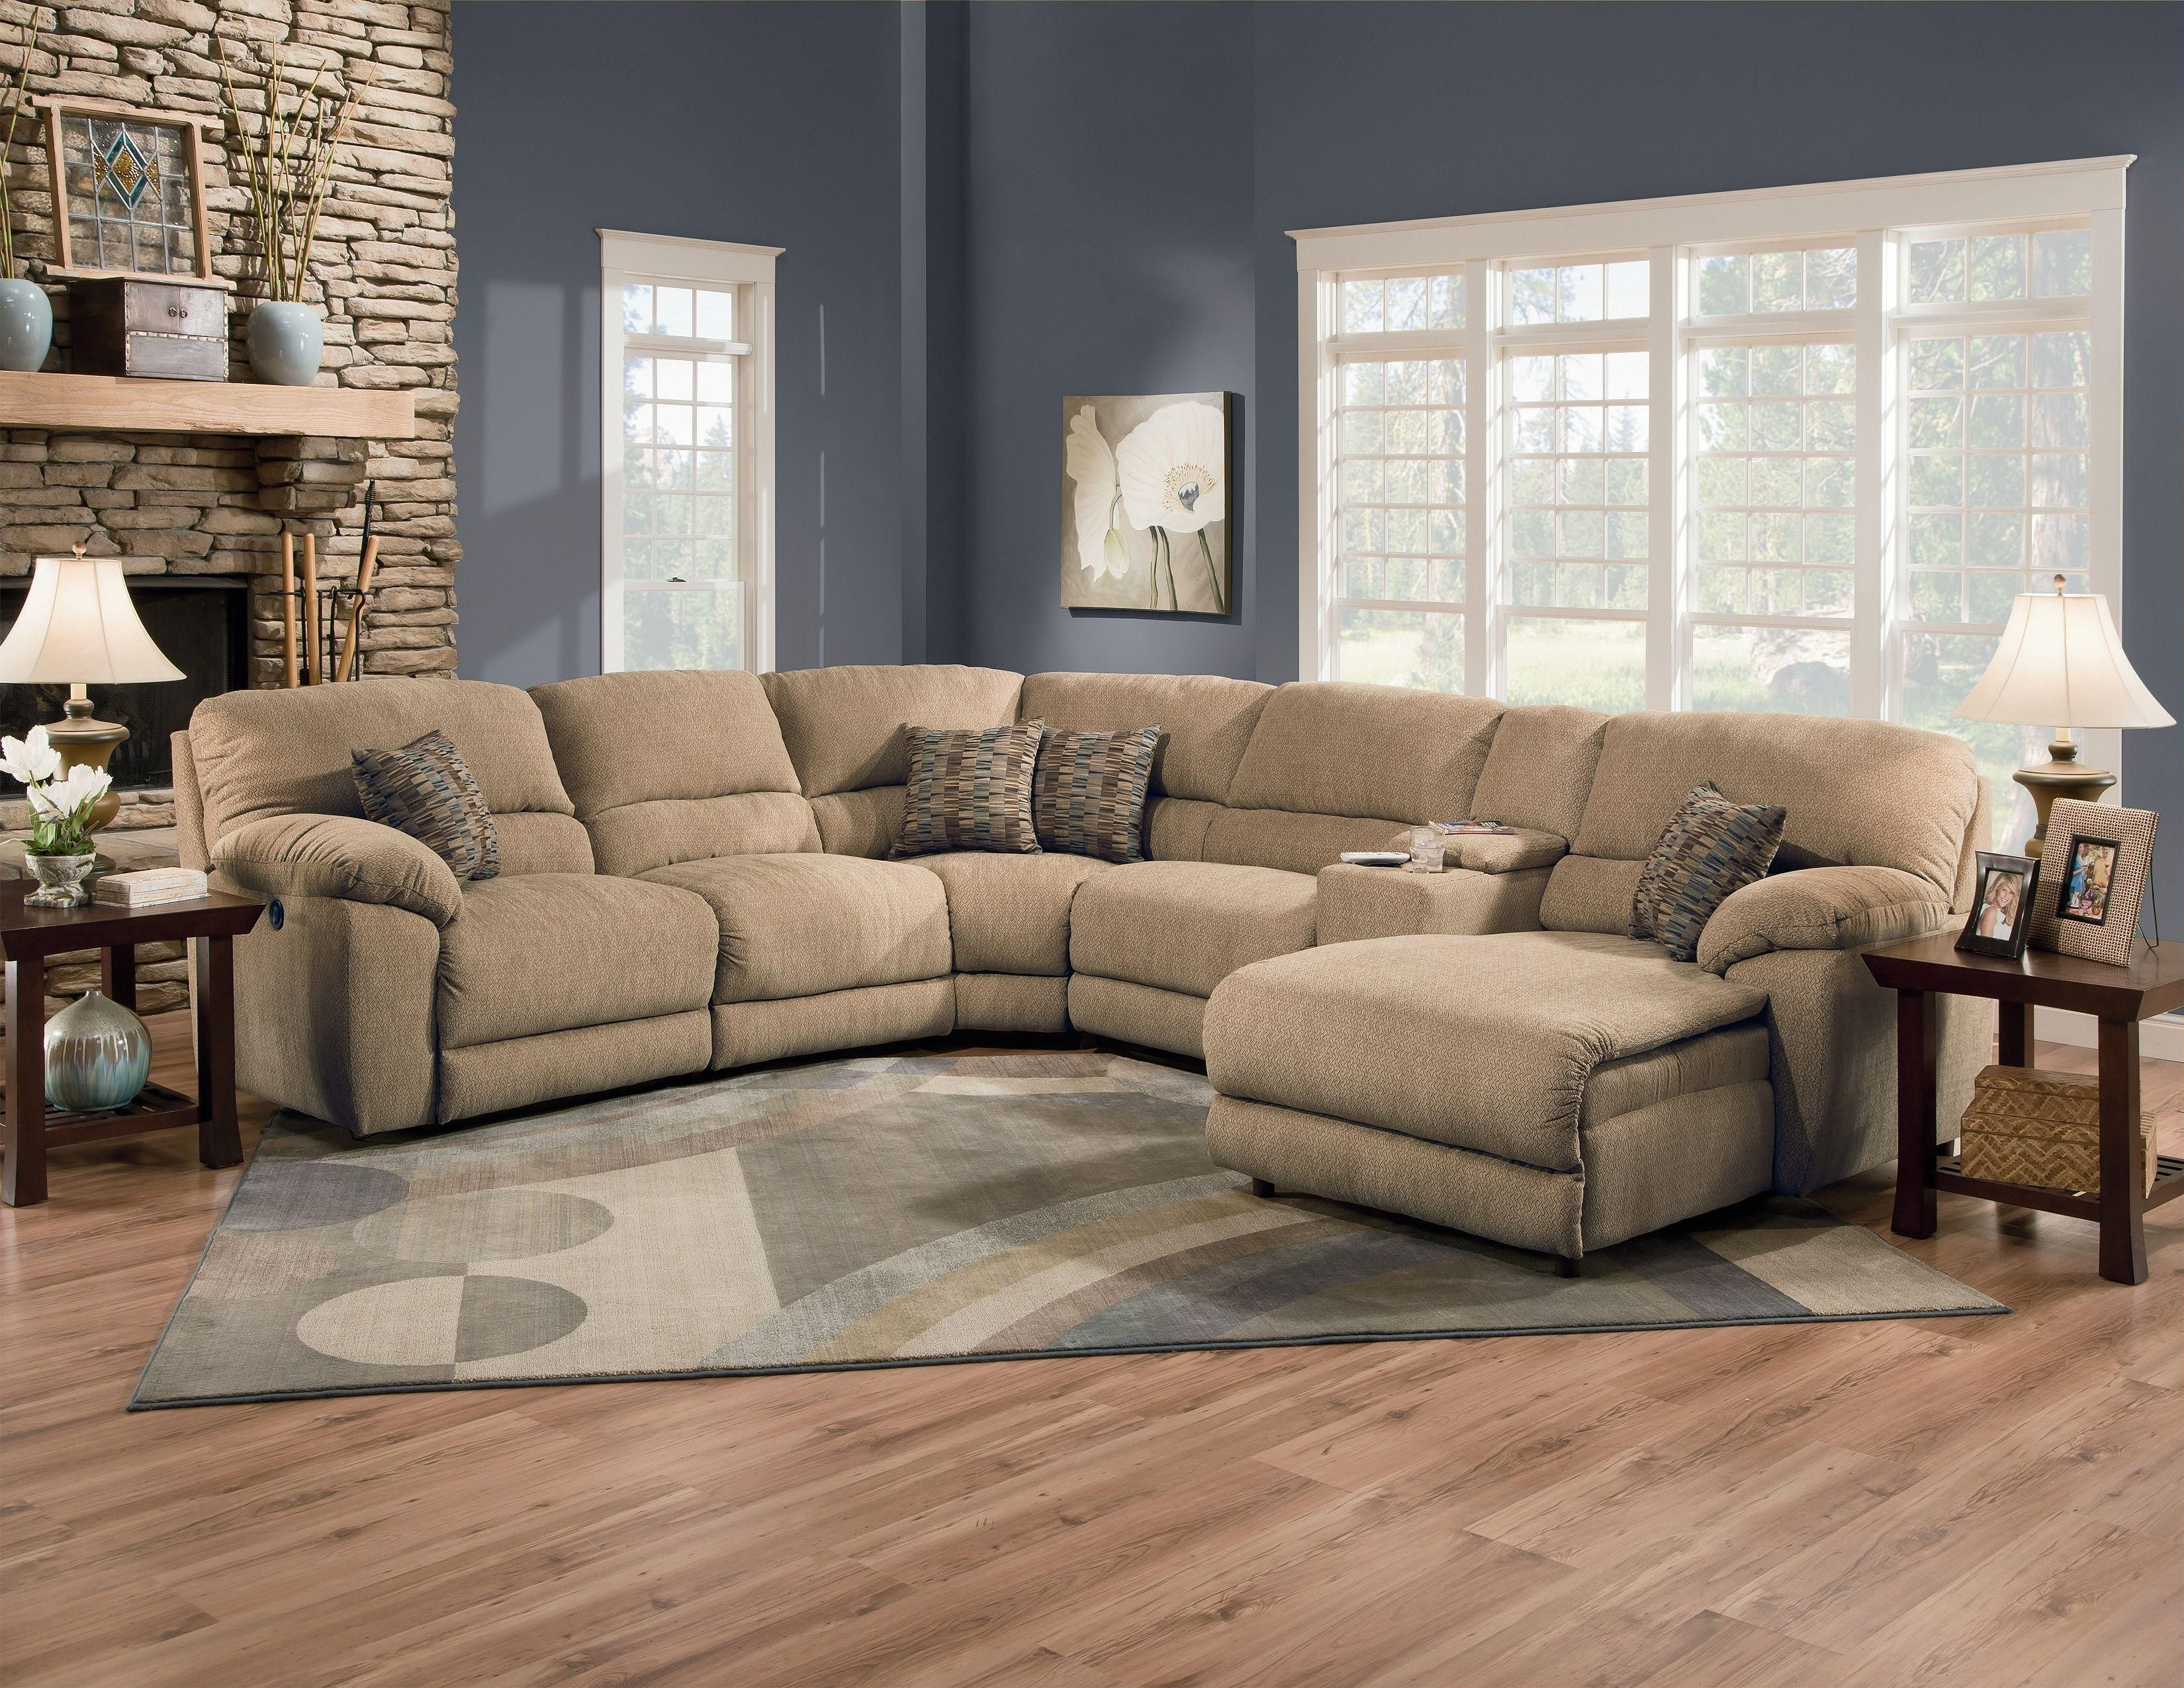 If This Is Not The Sectional We Currently Have On Layaway It S Very Similar Can T Wait Until We Move In Sectional Sofa With Recliner Trendy Living Rooms Home